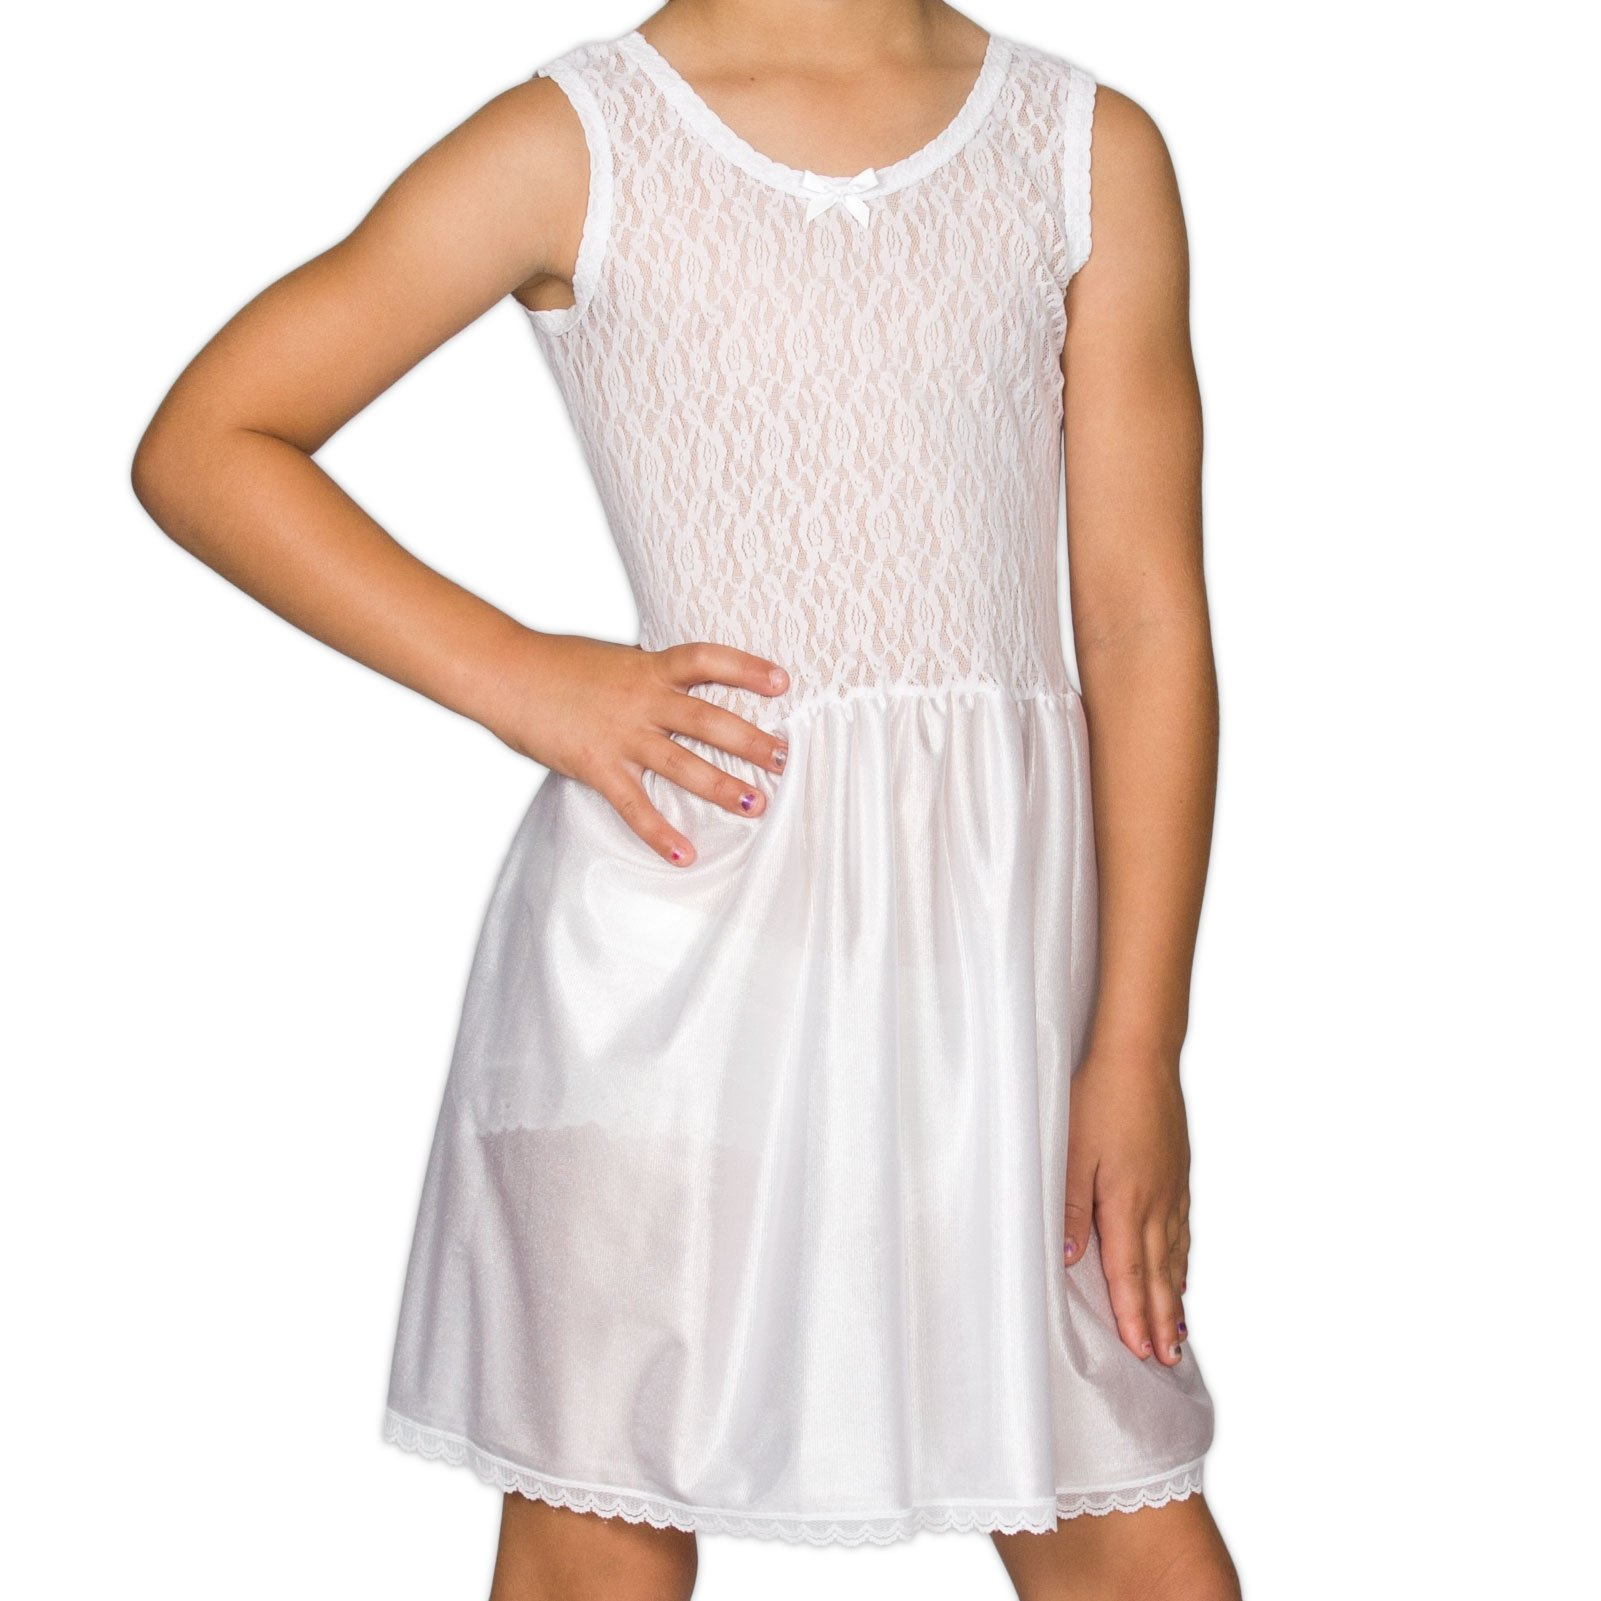 I.C. Collections Little Girls White Stretch Lace Slip, 6